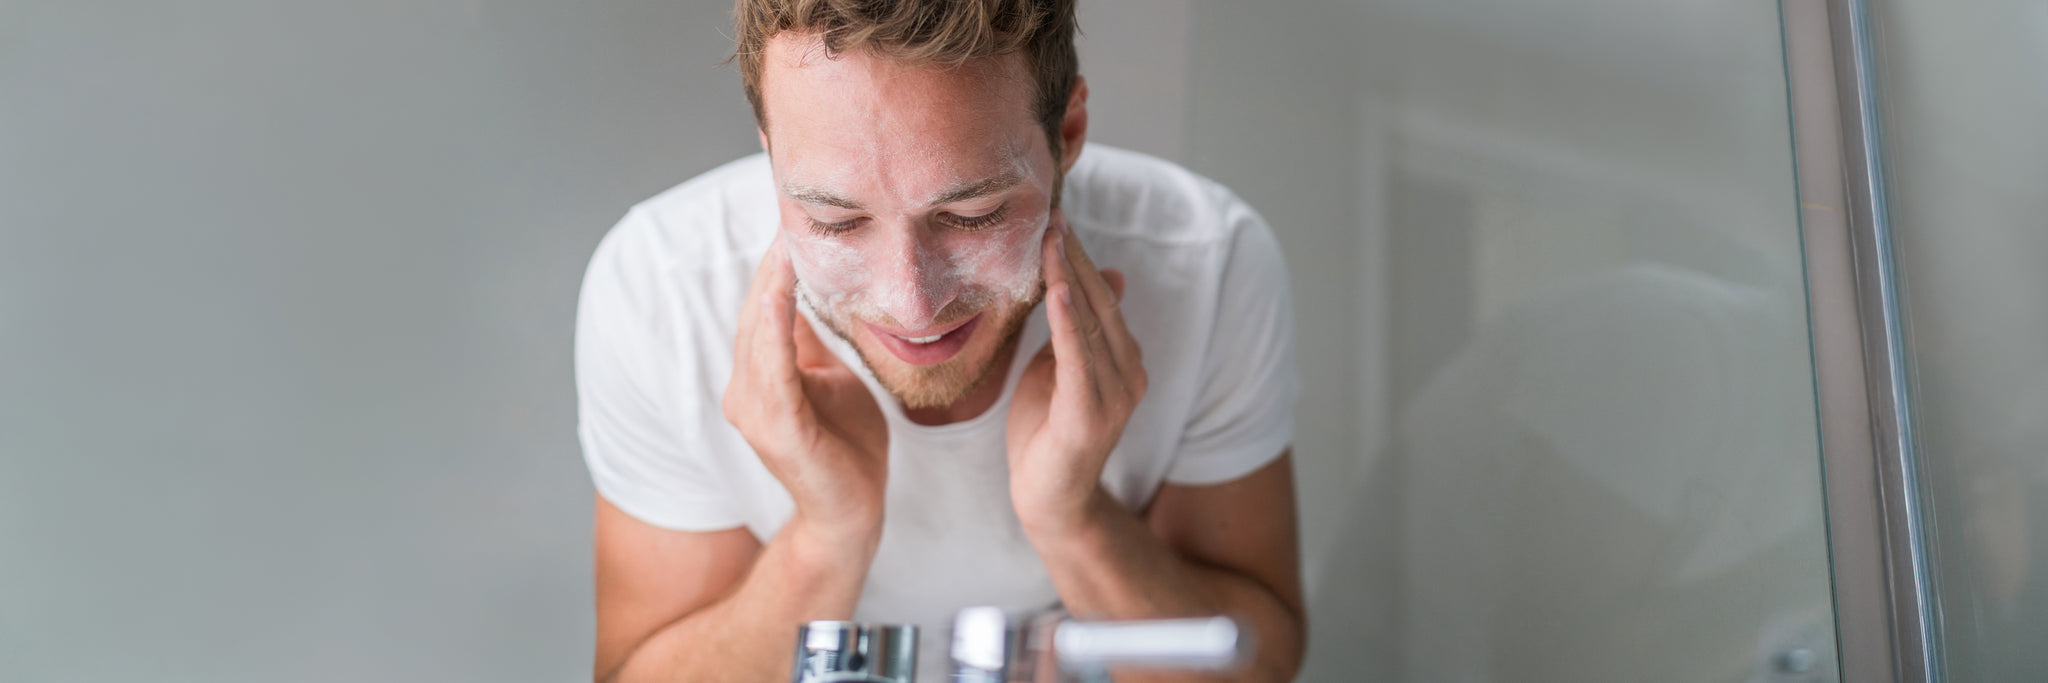 The Skincare Gift Your Husband Never Knew He Wanted